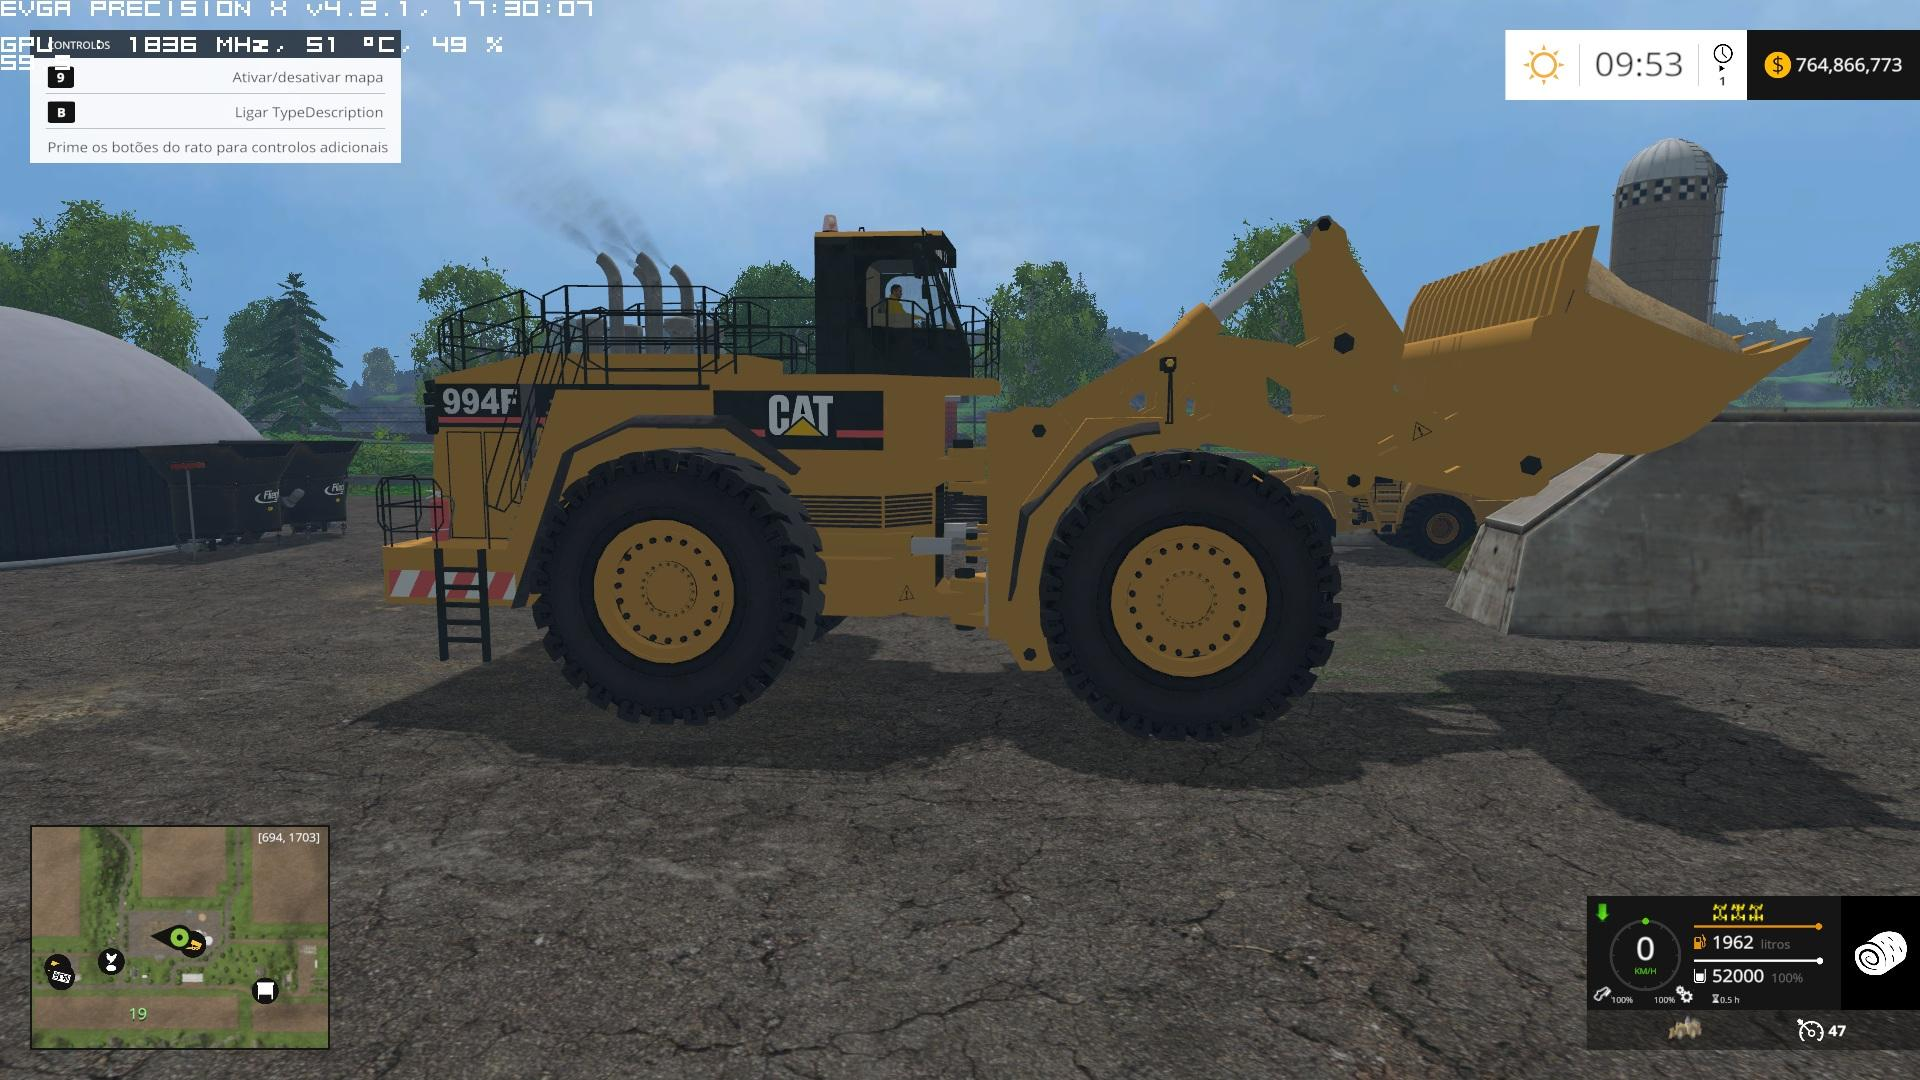 CATERPILLAR 994F FOR SILAGE V1 0 FS 2015 - Farming simulator 2019